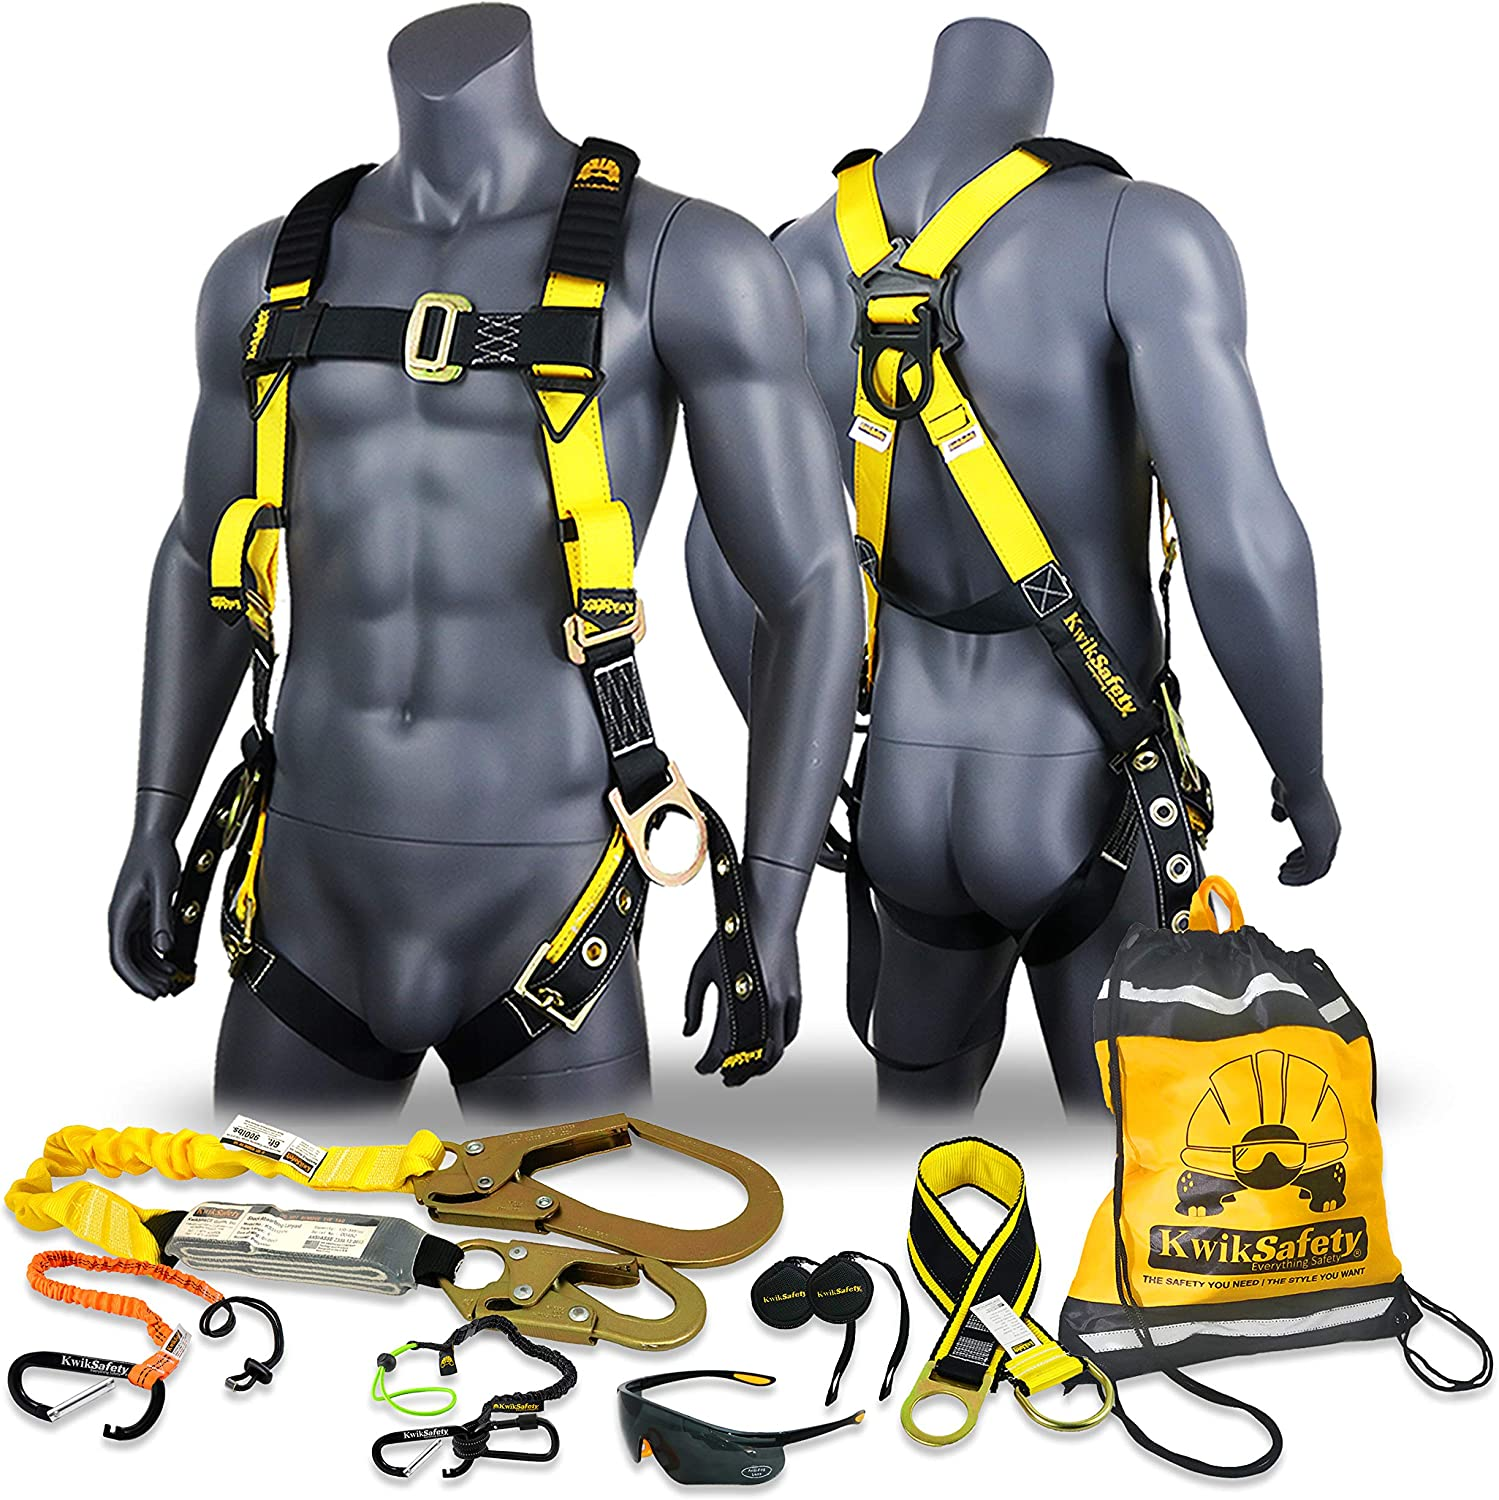 50 ft Vertical Lifeline Tool Lanyard Roof Anchor ANSI OSHA PPE Fall Protection Arrest Restraint Construction Roofing Bucket TORNADO ASSEMBLY Charlotte, NC 1D Full Body Safety Harness KwikSafety